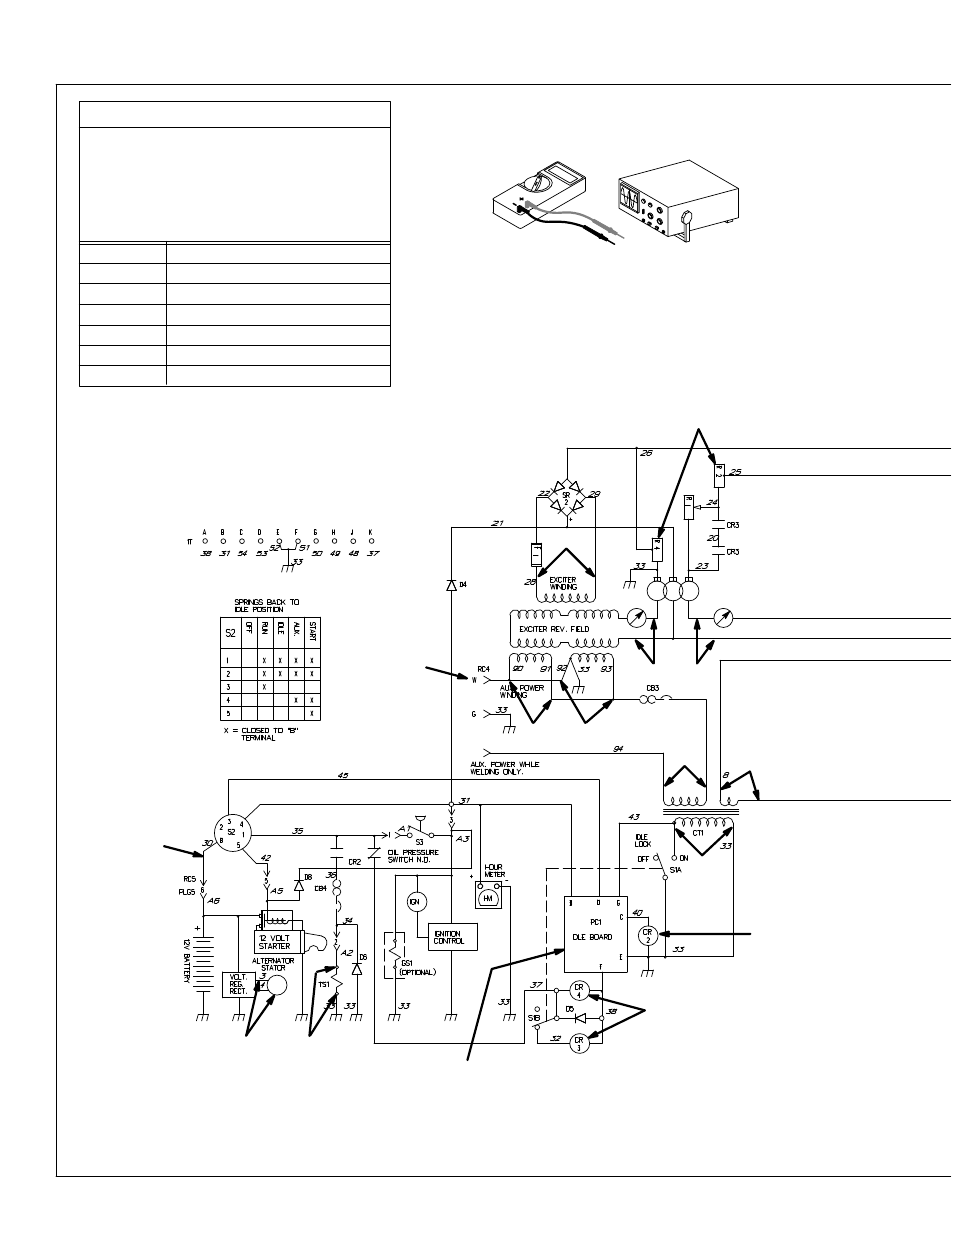 hight resolution of miller electric legend aead 200 le user manual page 22 68 troubleshooting circuit diagram for welding generator miller